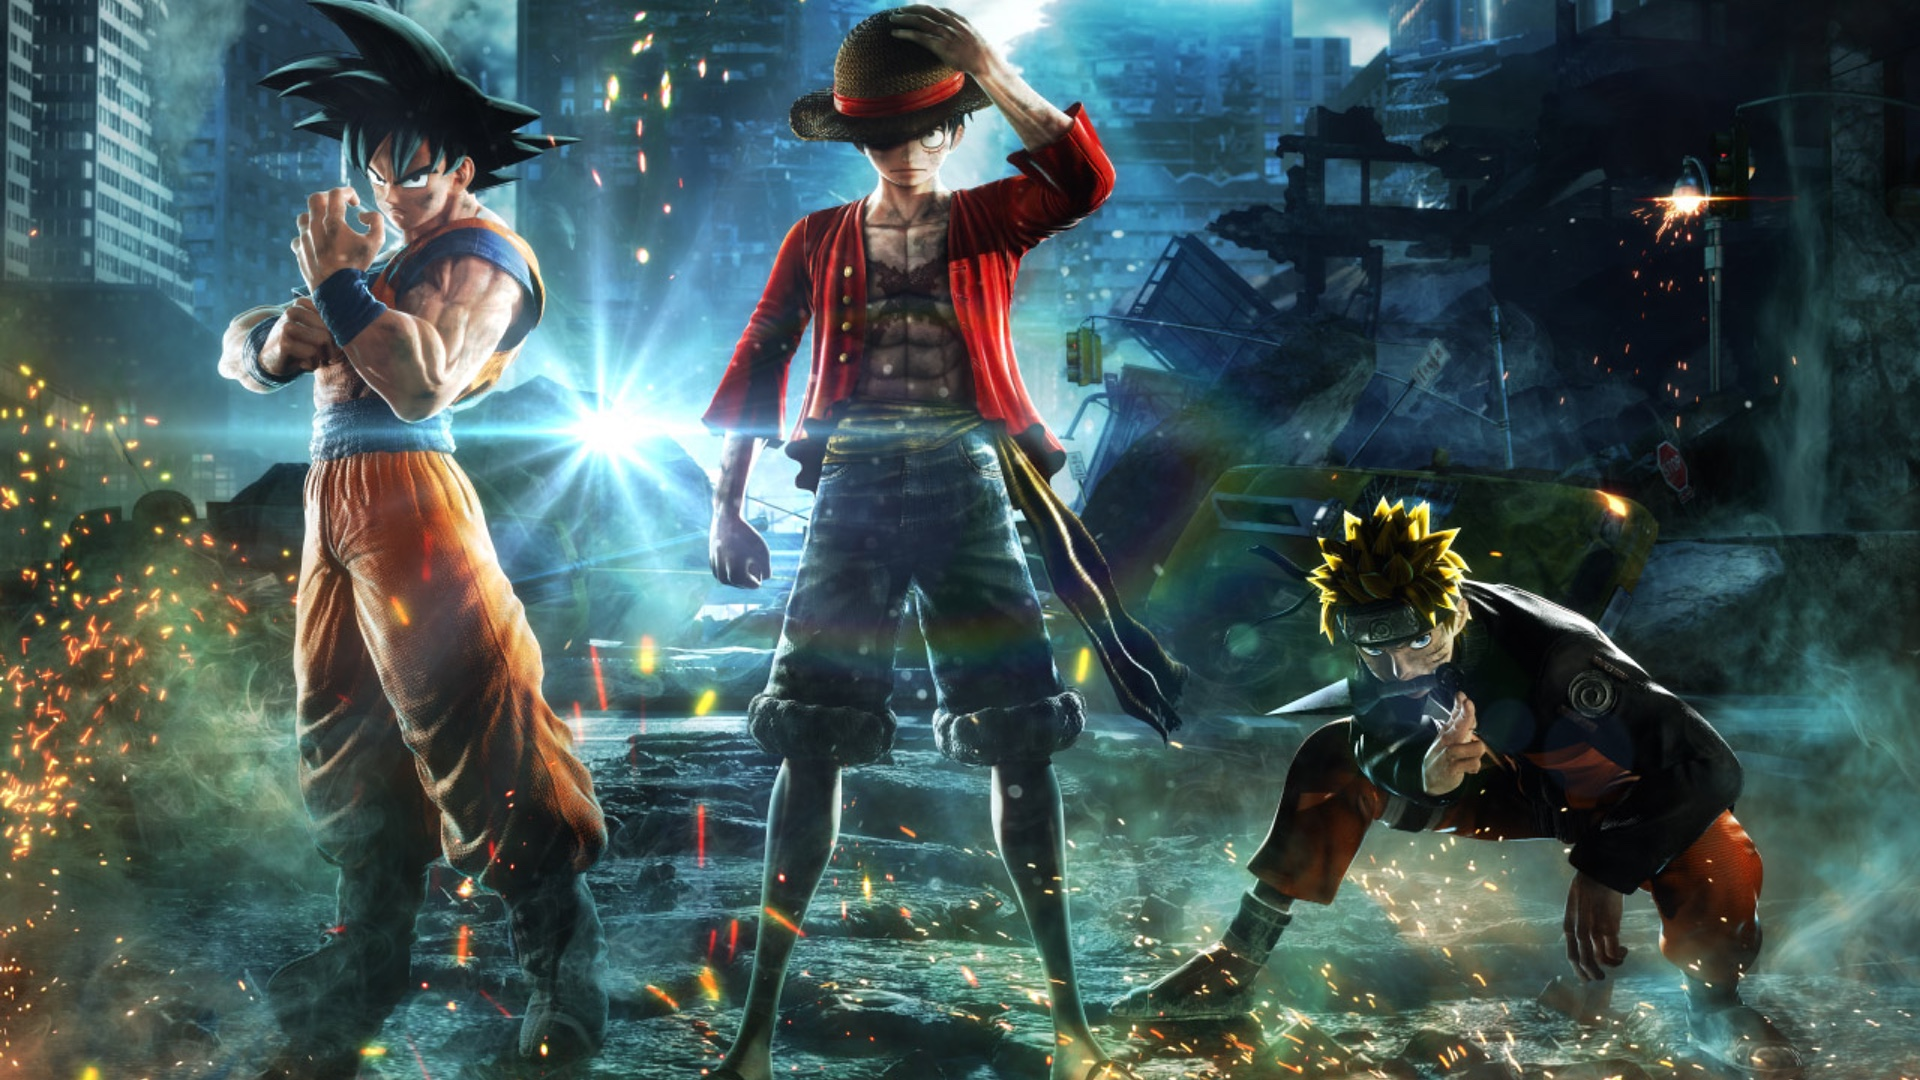 What would happen if naruto luffy goku and basically all of your favorite anime characters got together in a video game most people wouldnt even bother